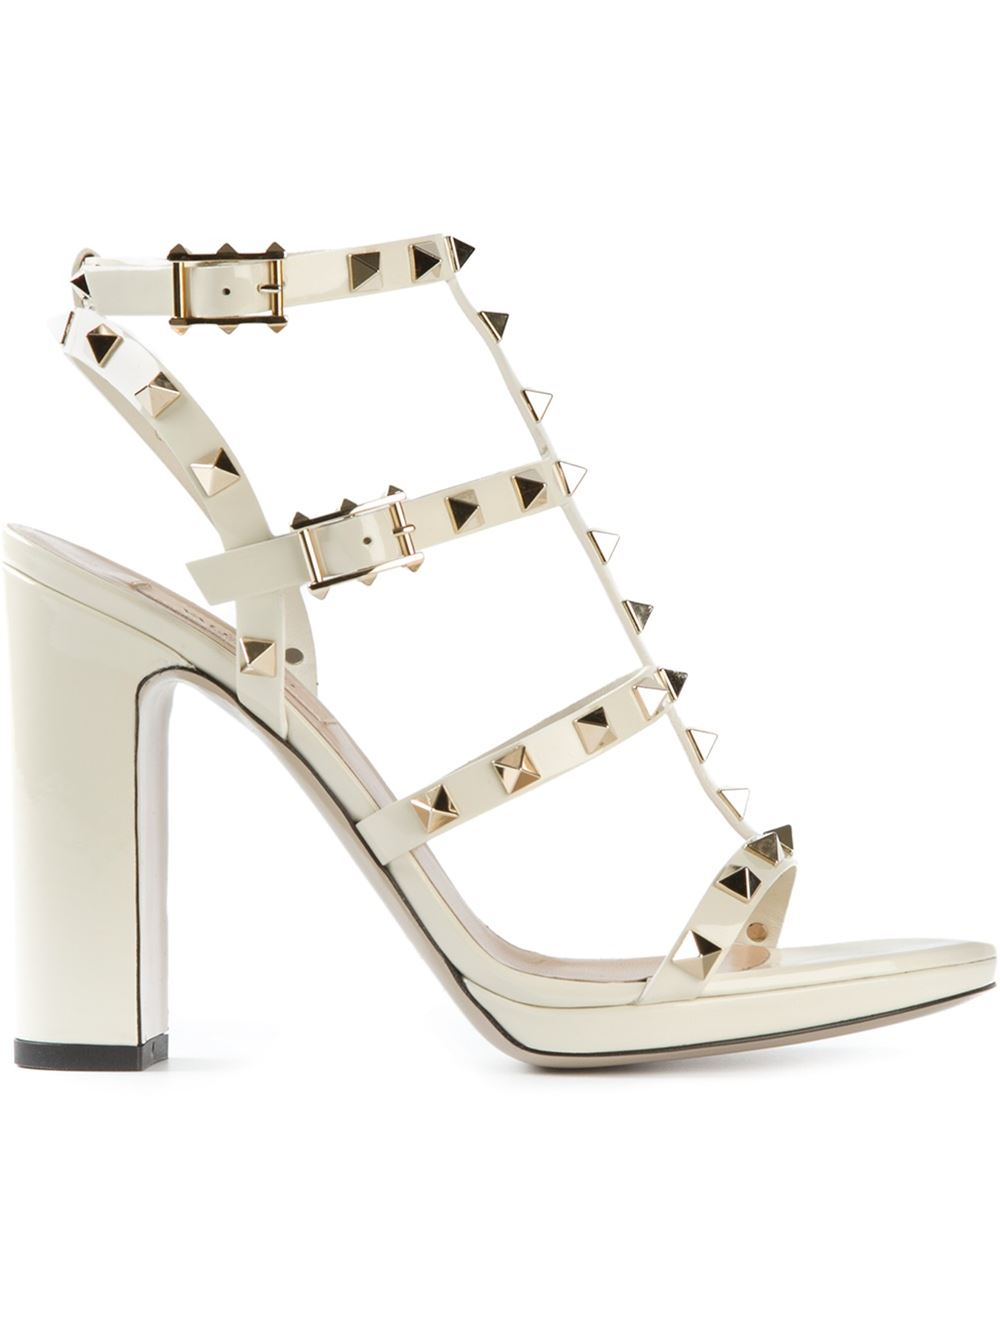 3324fdc131d Valentino Rockstud Sandals in White - Lyst